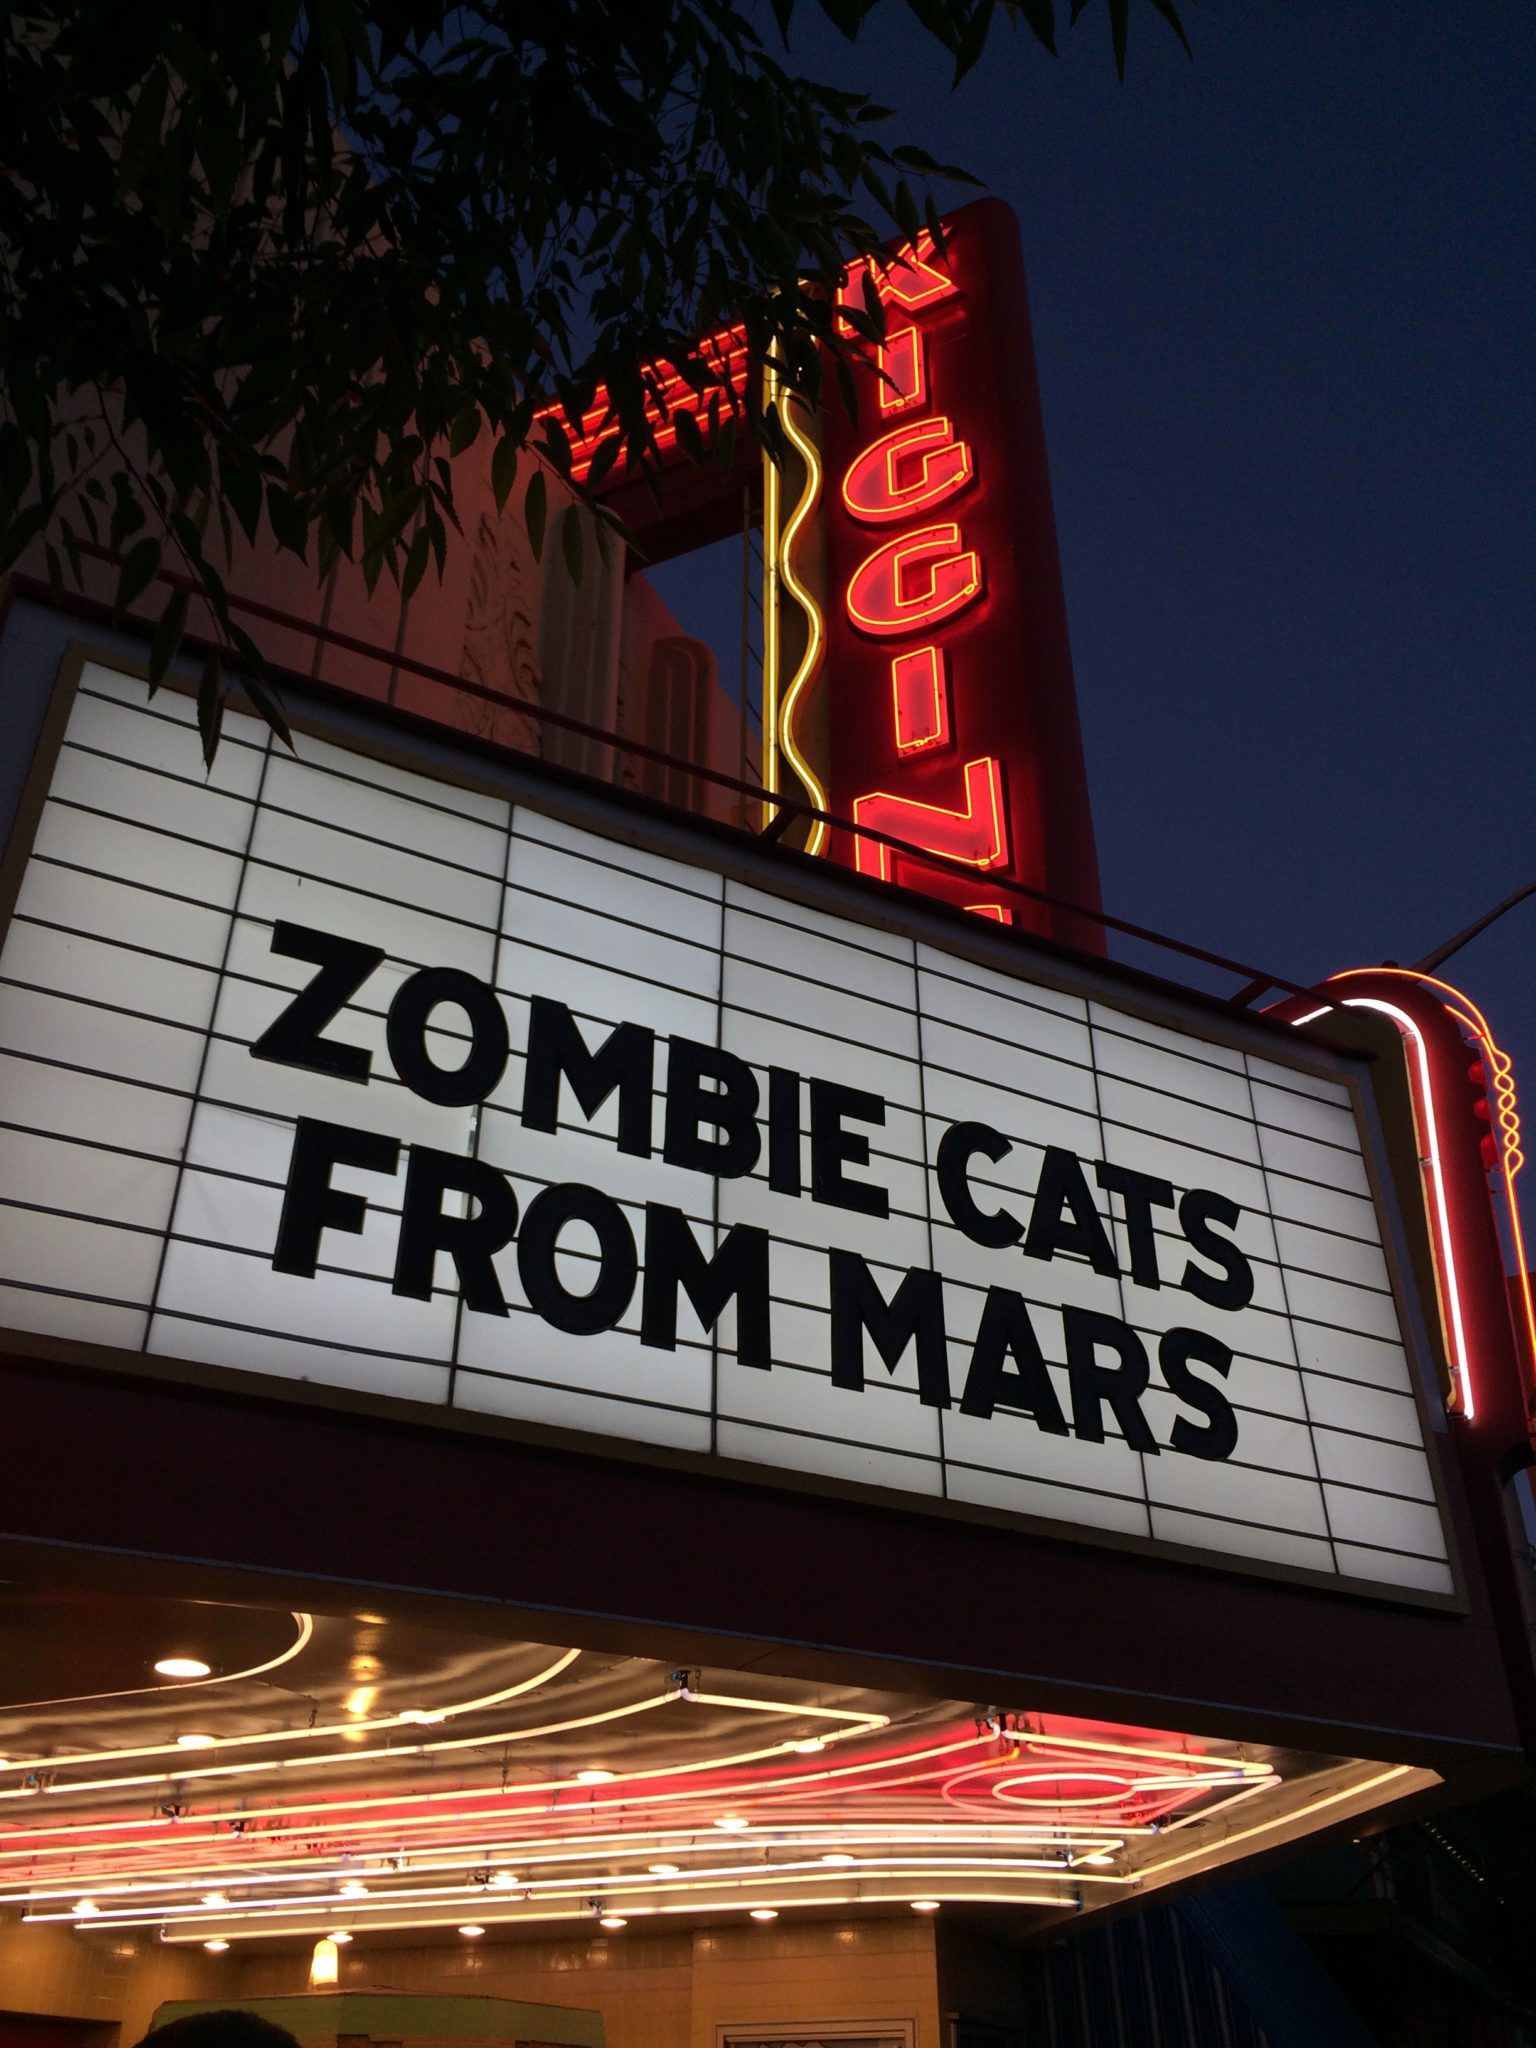 Zombie Cats From Mars – Marquee